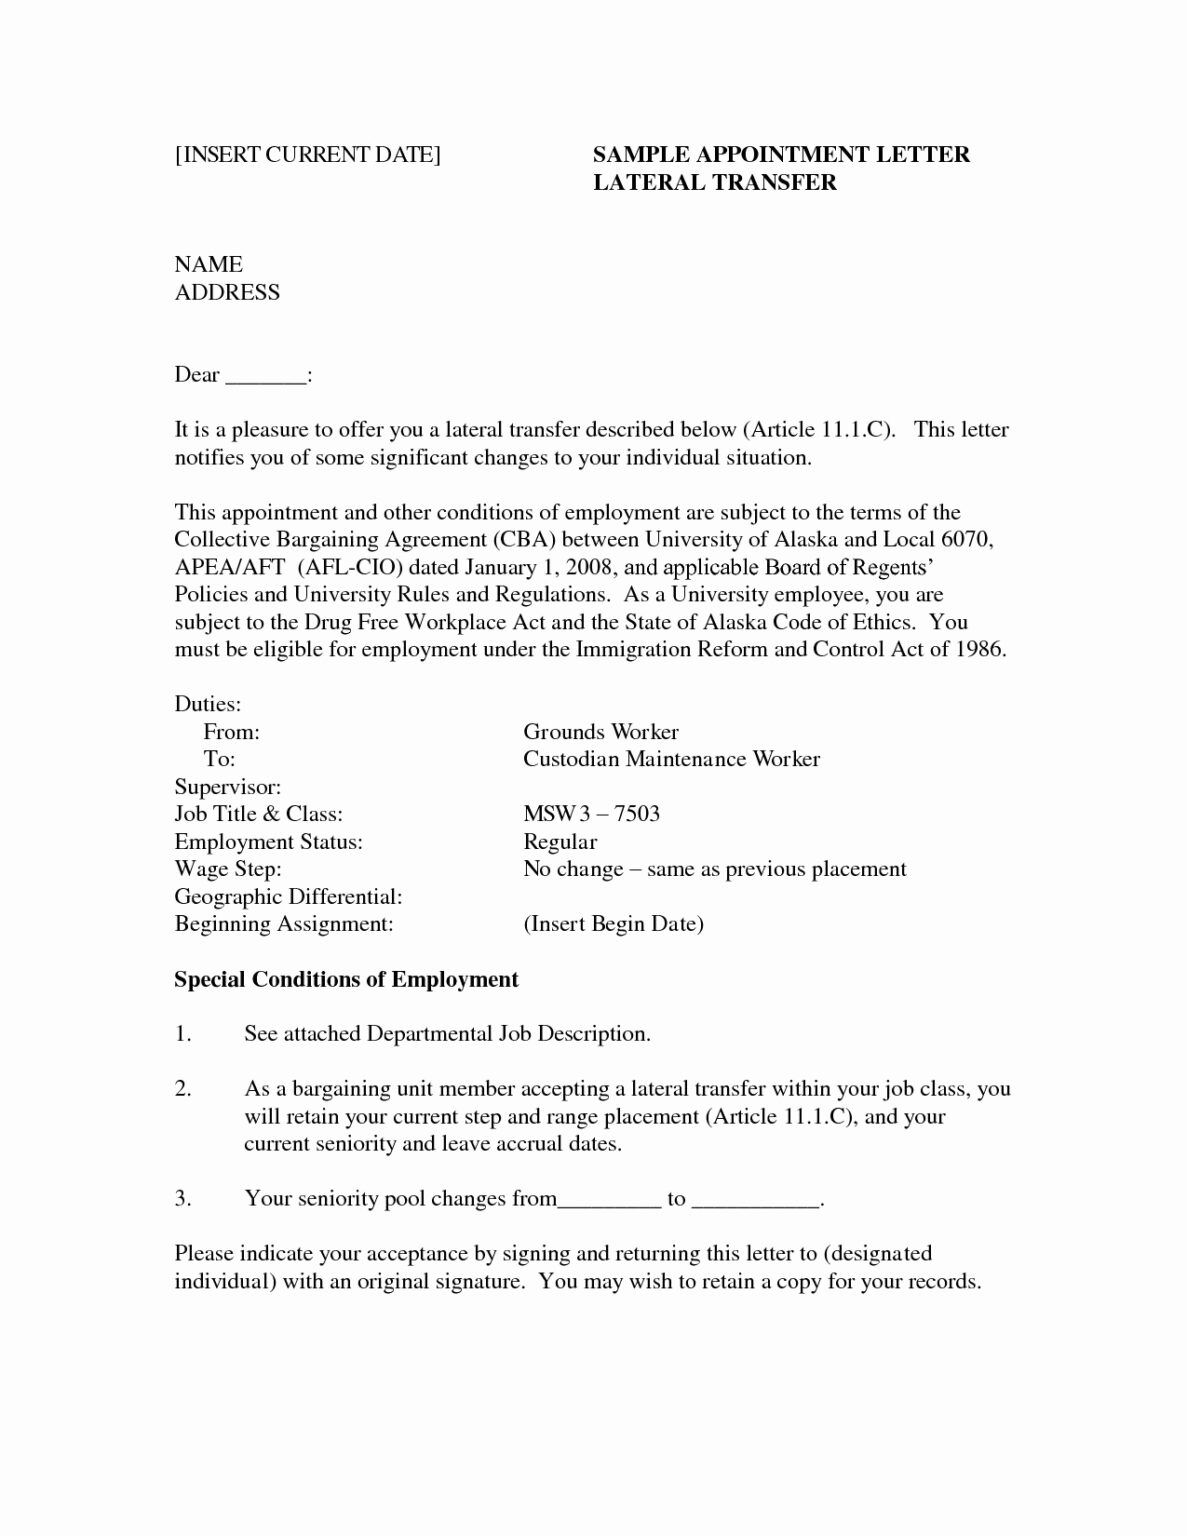 Pay For Delete Letter Template Samples With Pay For Delete Letter Template Resume Summary Examples Teaching Resume Career Change Resume Pay for delete letter template